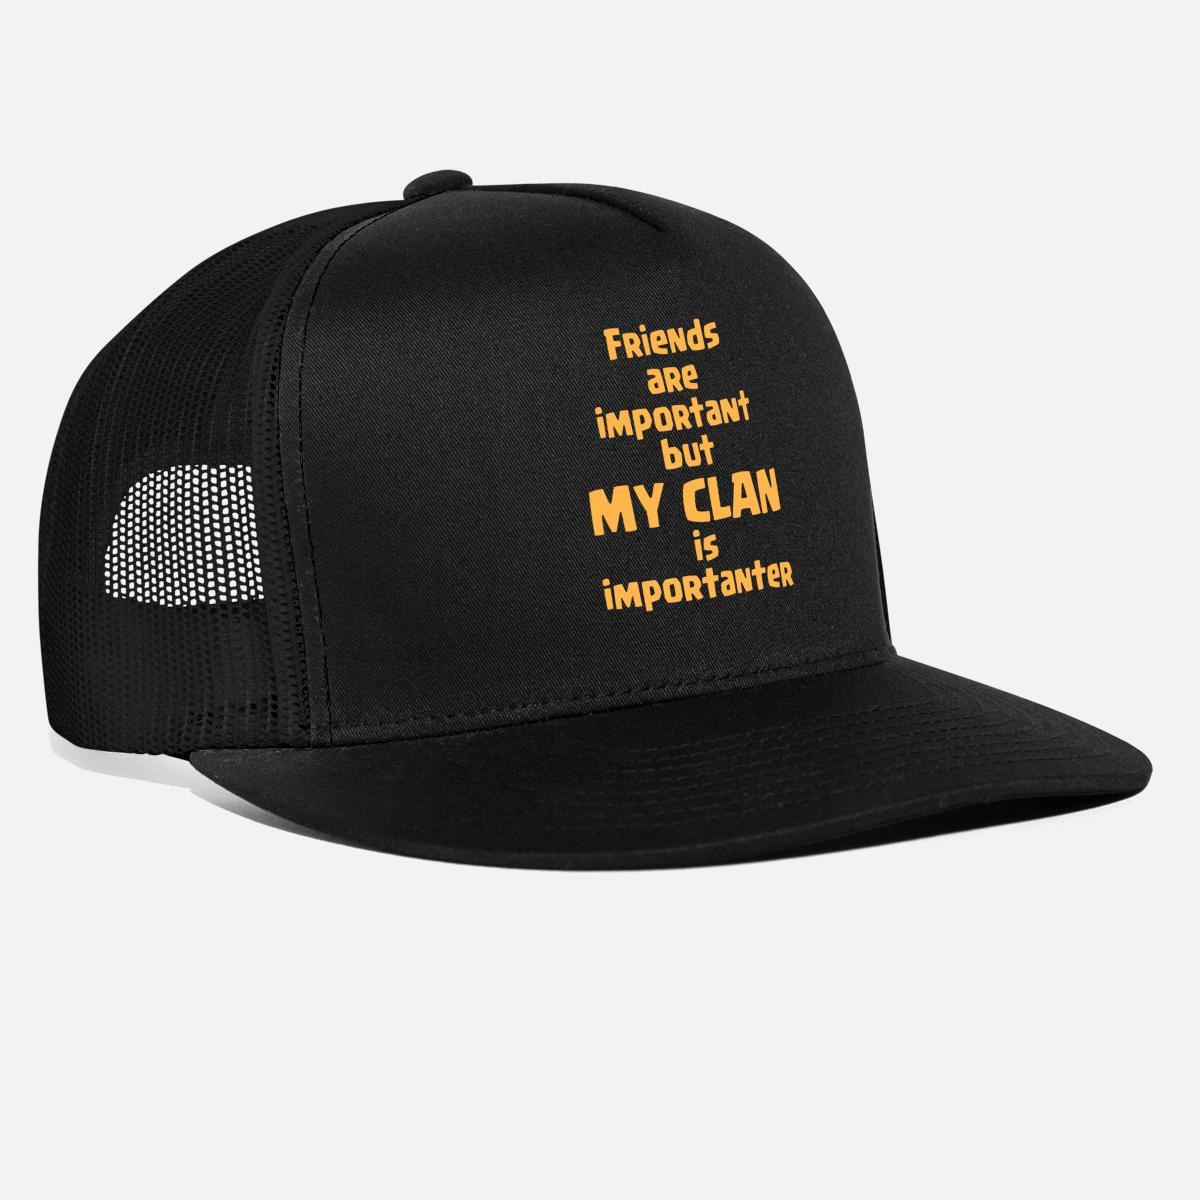 f10f679ca2d4d5 friends are important but my clan is importanter Trucker Cap   Spreadshirt